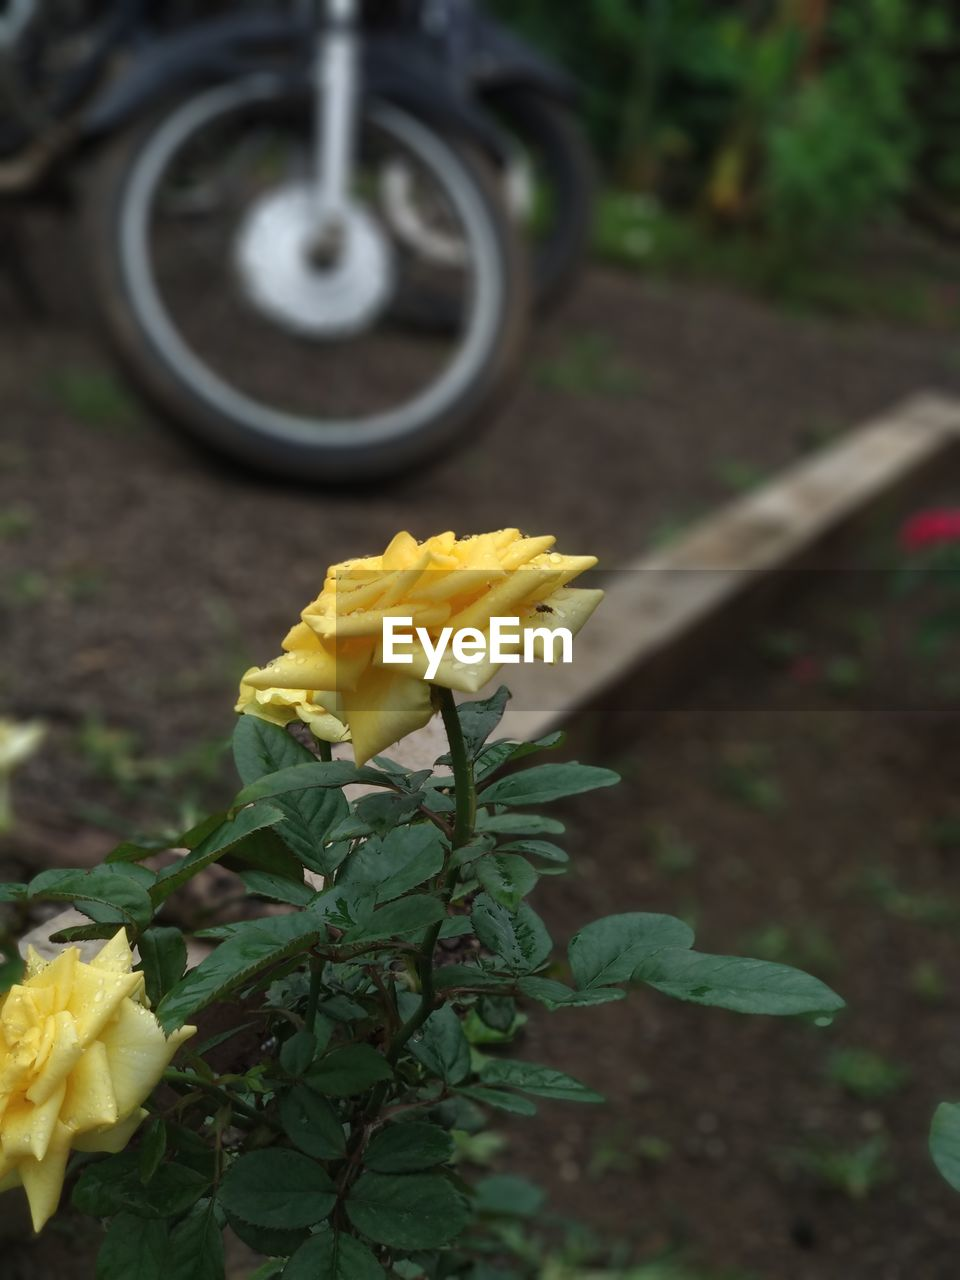 plant, yellow, leaf, nature, plant part, flower, transportation, flowering plant, day, growth, close-up, no people, petal, freshness, focus on foreground, outdoors, beauty in nature, vulnerability, fragility, wheel, tire, flower head